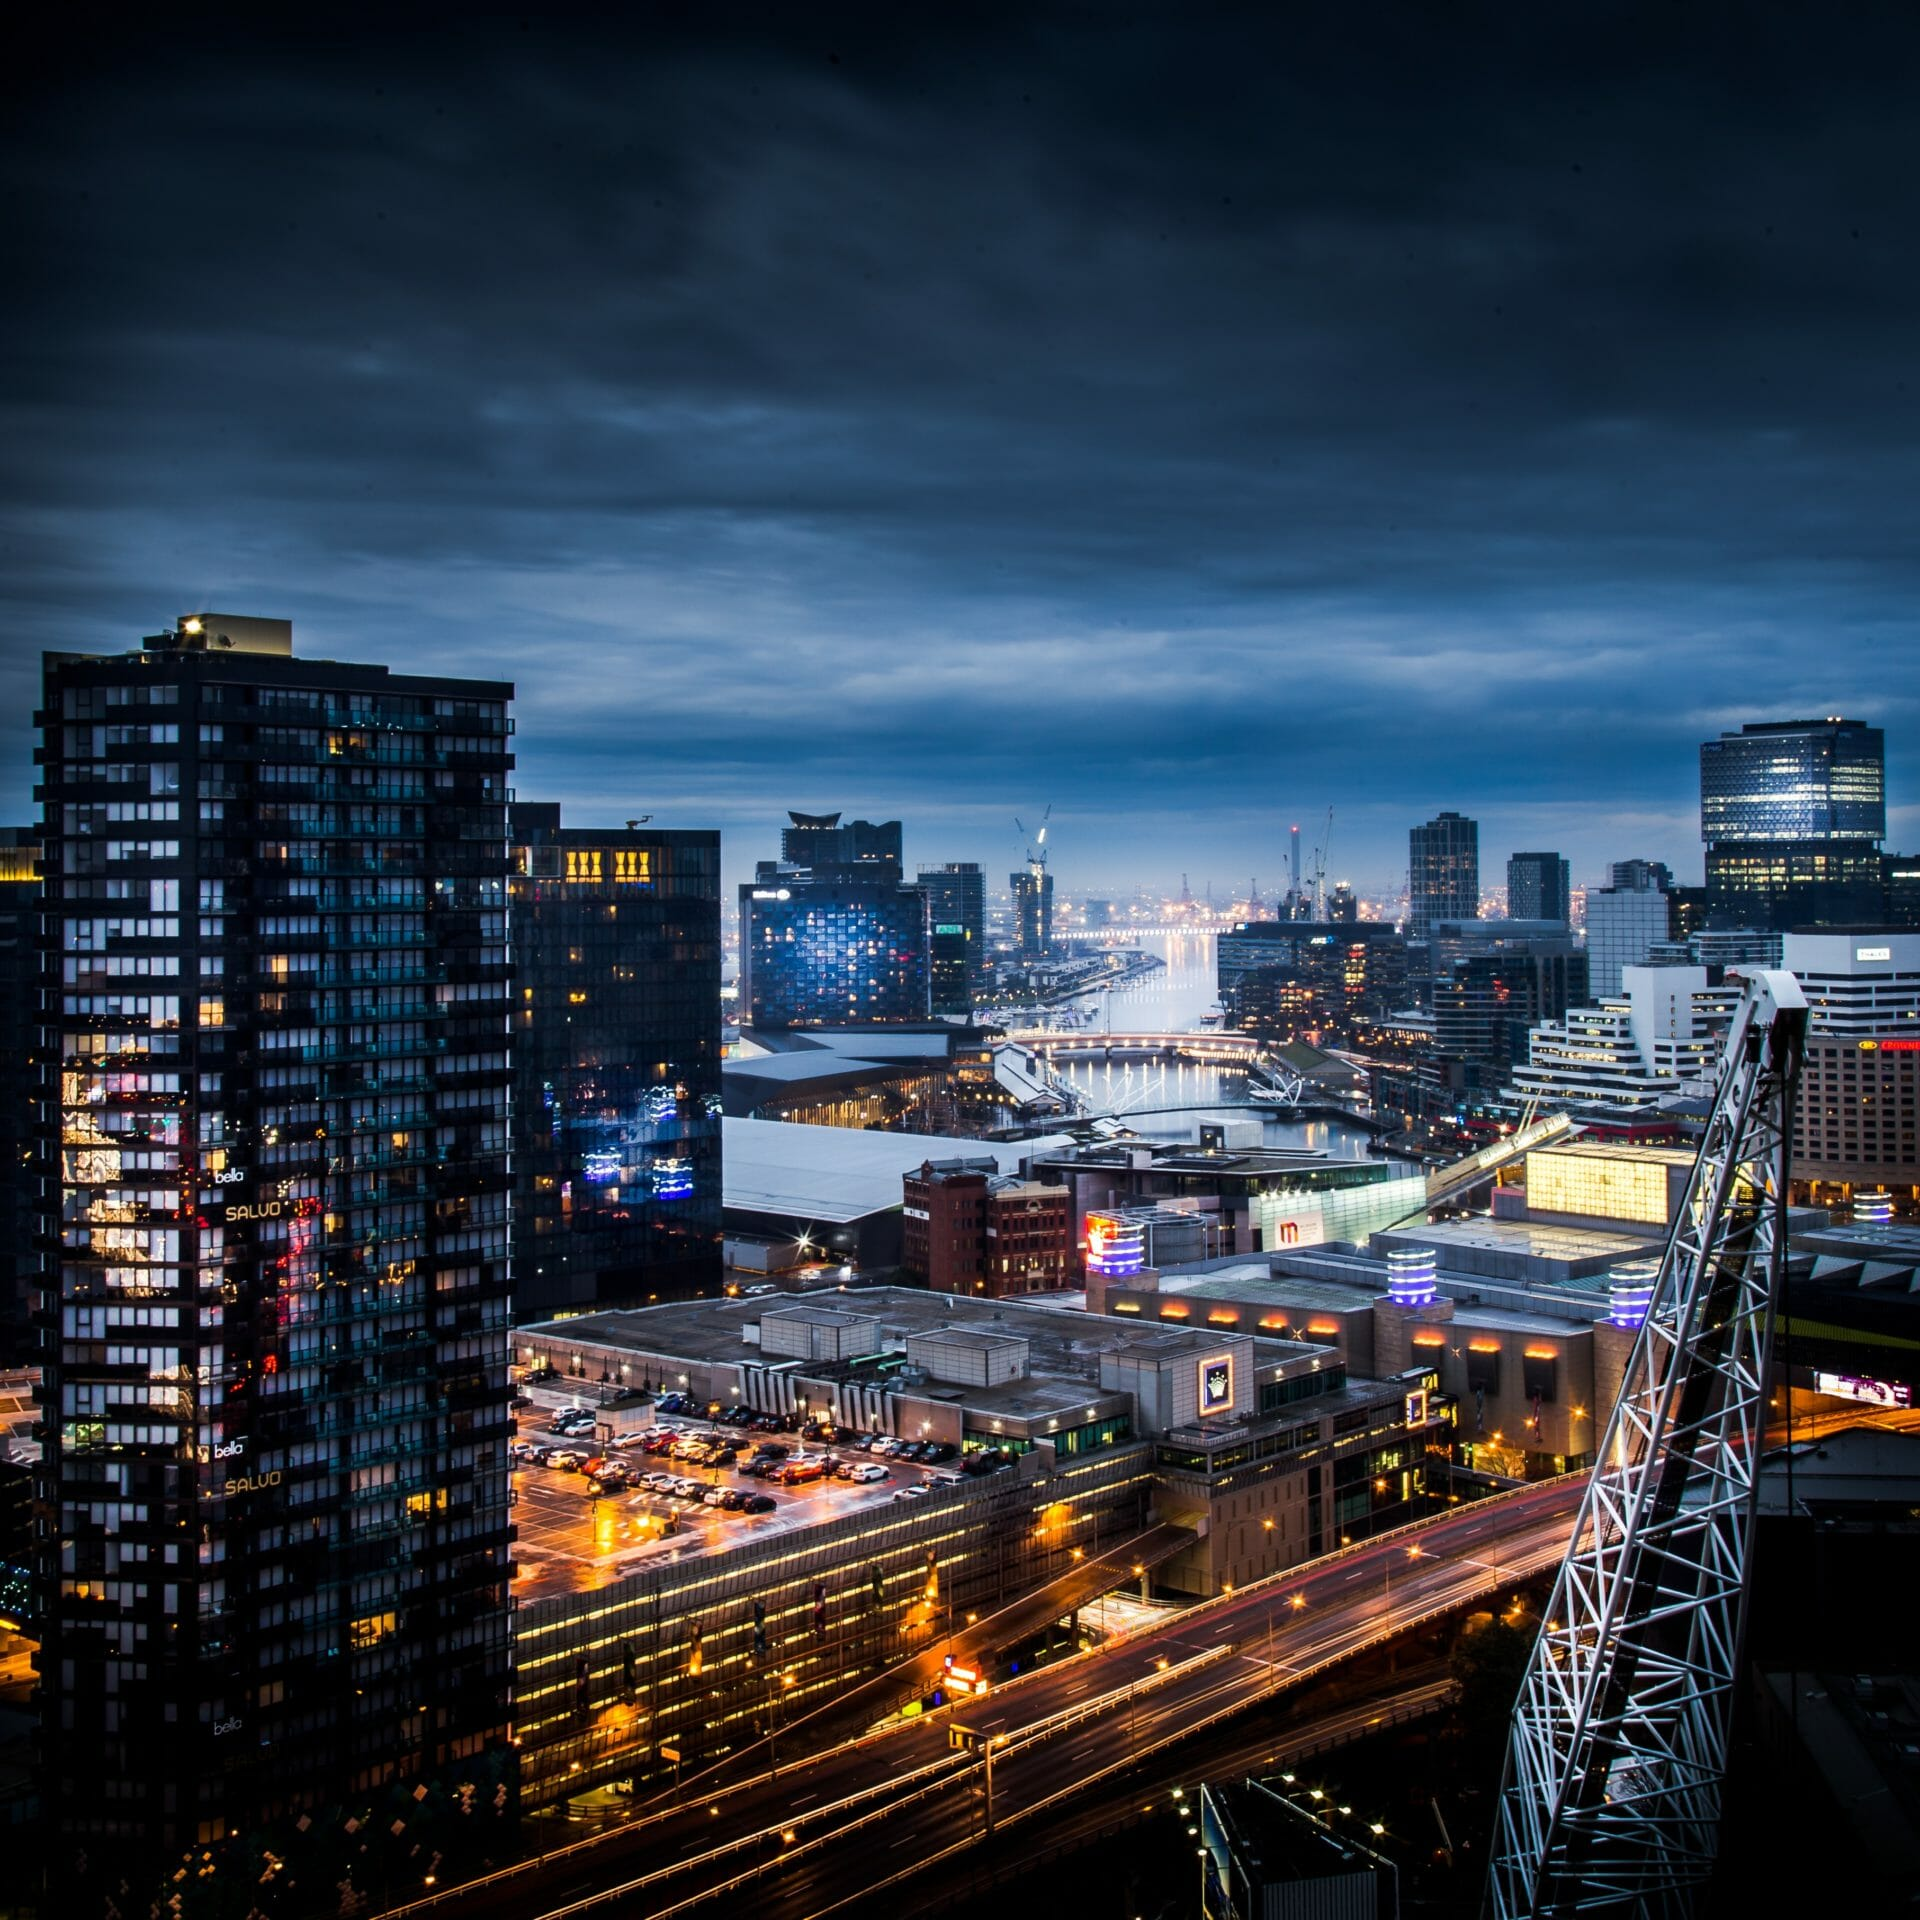 A dramatic night time view of the Melbourne CBD with moody cloudy overhead